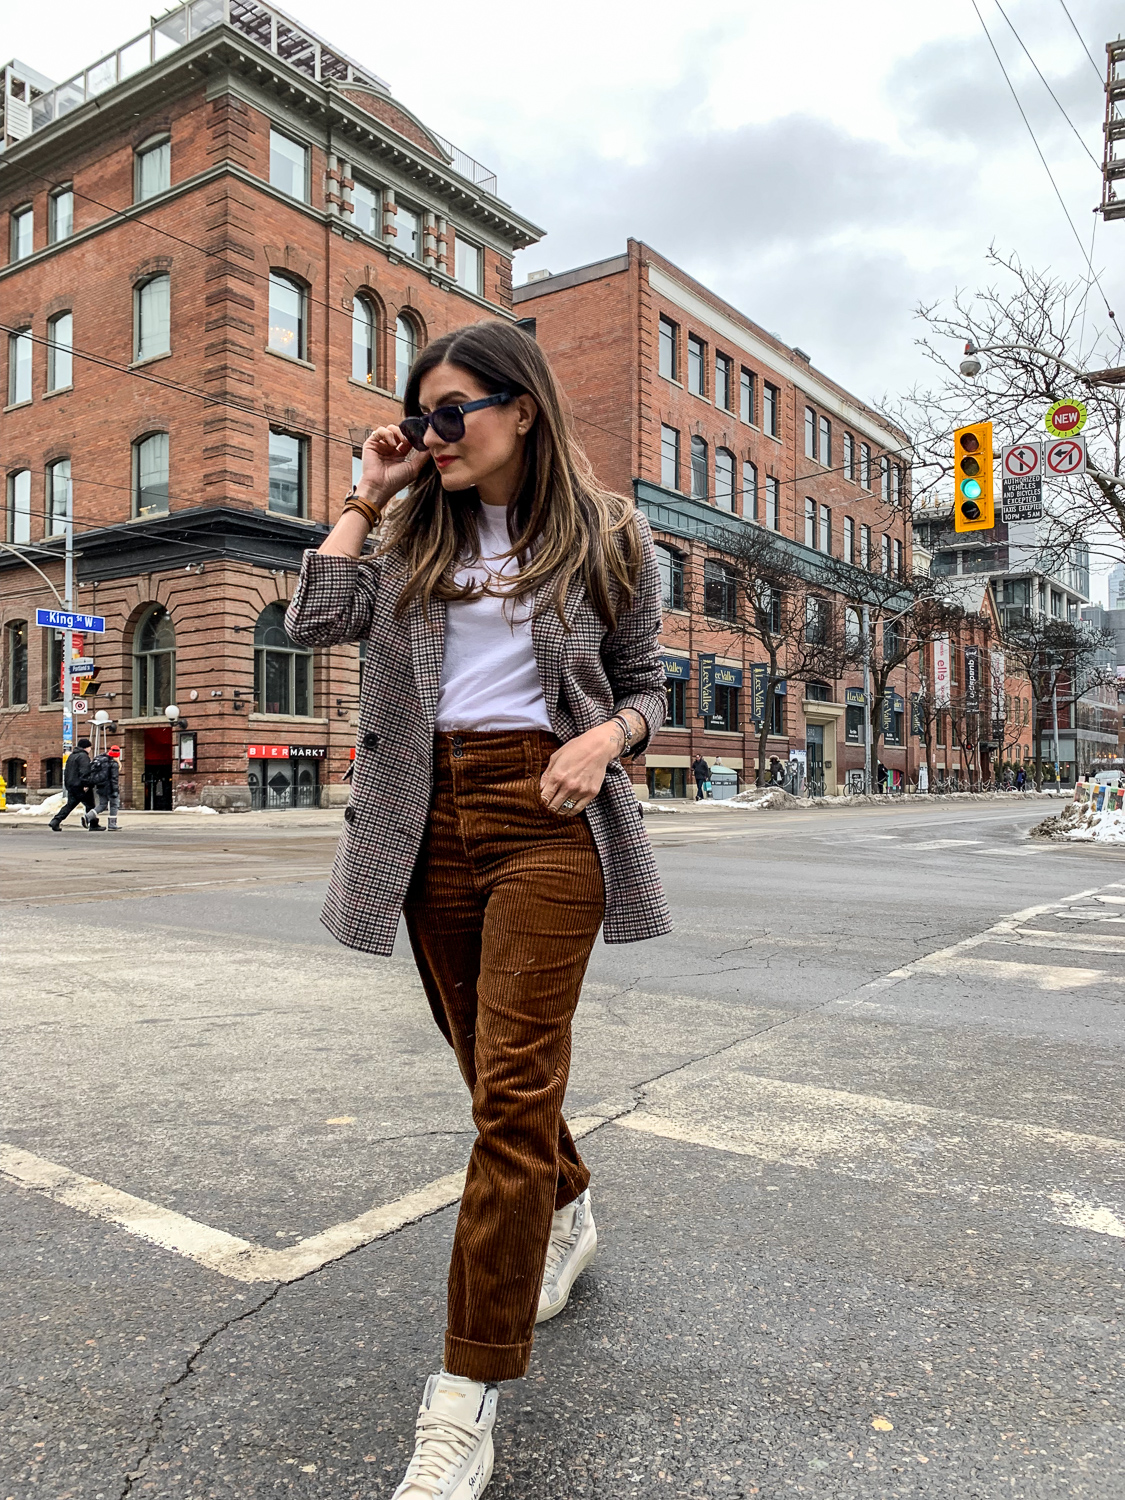 nathalie martin, brown corduroy pants, sandro paris t-shirt, frank and oak brown plaid oversized blazer, saint laurent high top canvas sneakers, woahstyle.com, street style_5200.jpg